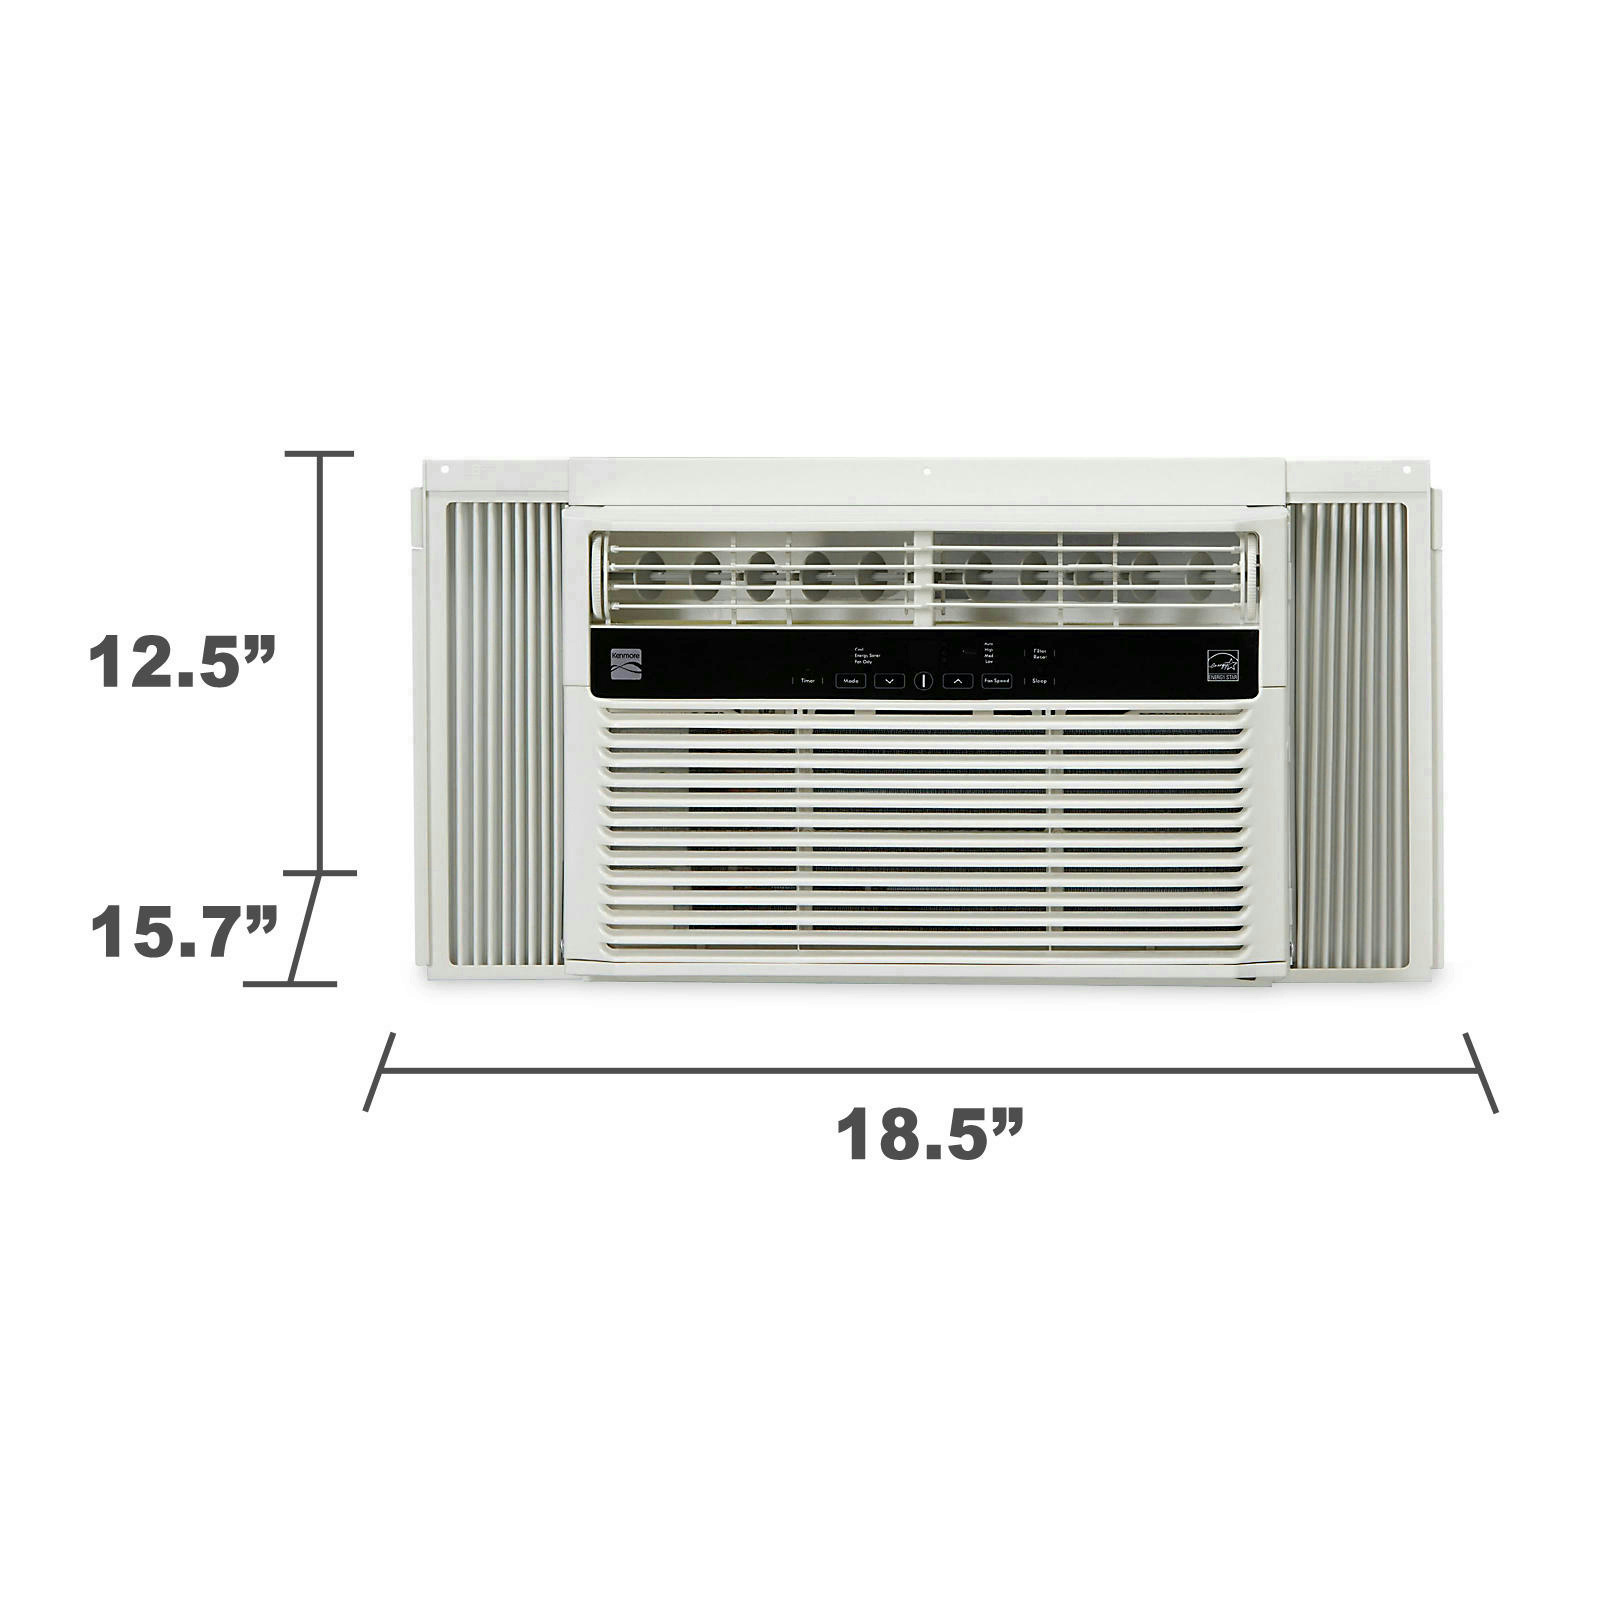 #585343 Kenmore 5200 BTU Single Room Air Conditioner With Remote  Reliable 14038 Single Room Air Conditioner No Window wallpaper with 1600x1600 px on helpvideos.info - Air Conditioners, Air Coolers and more